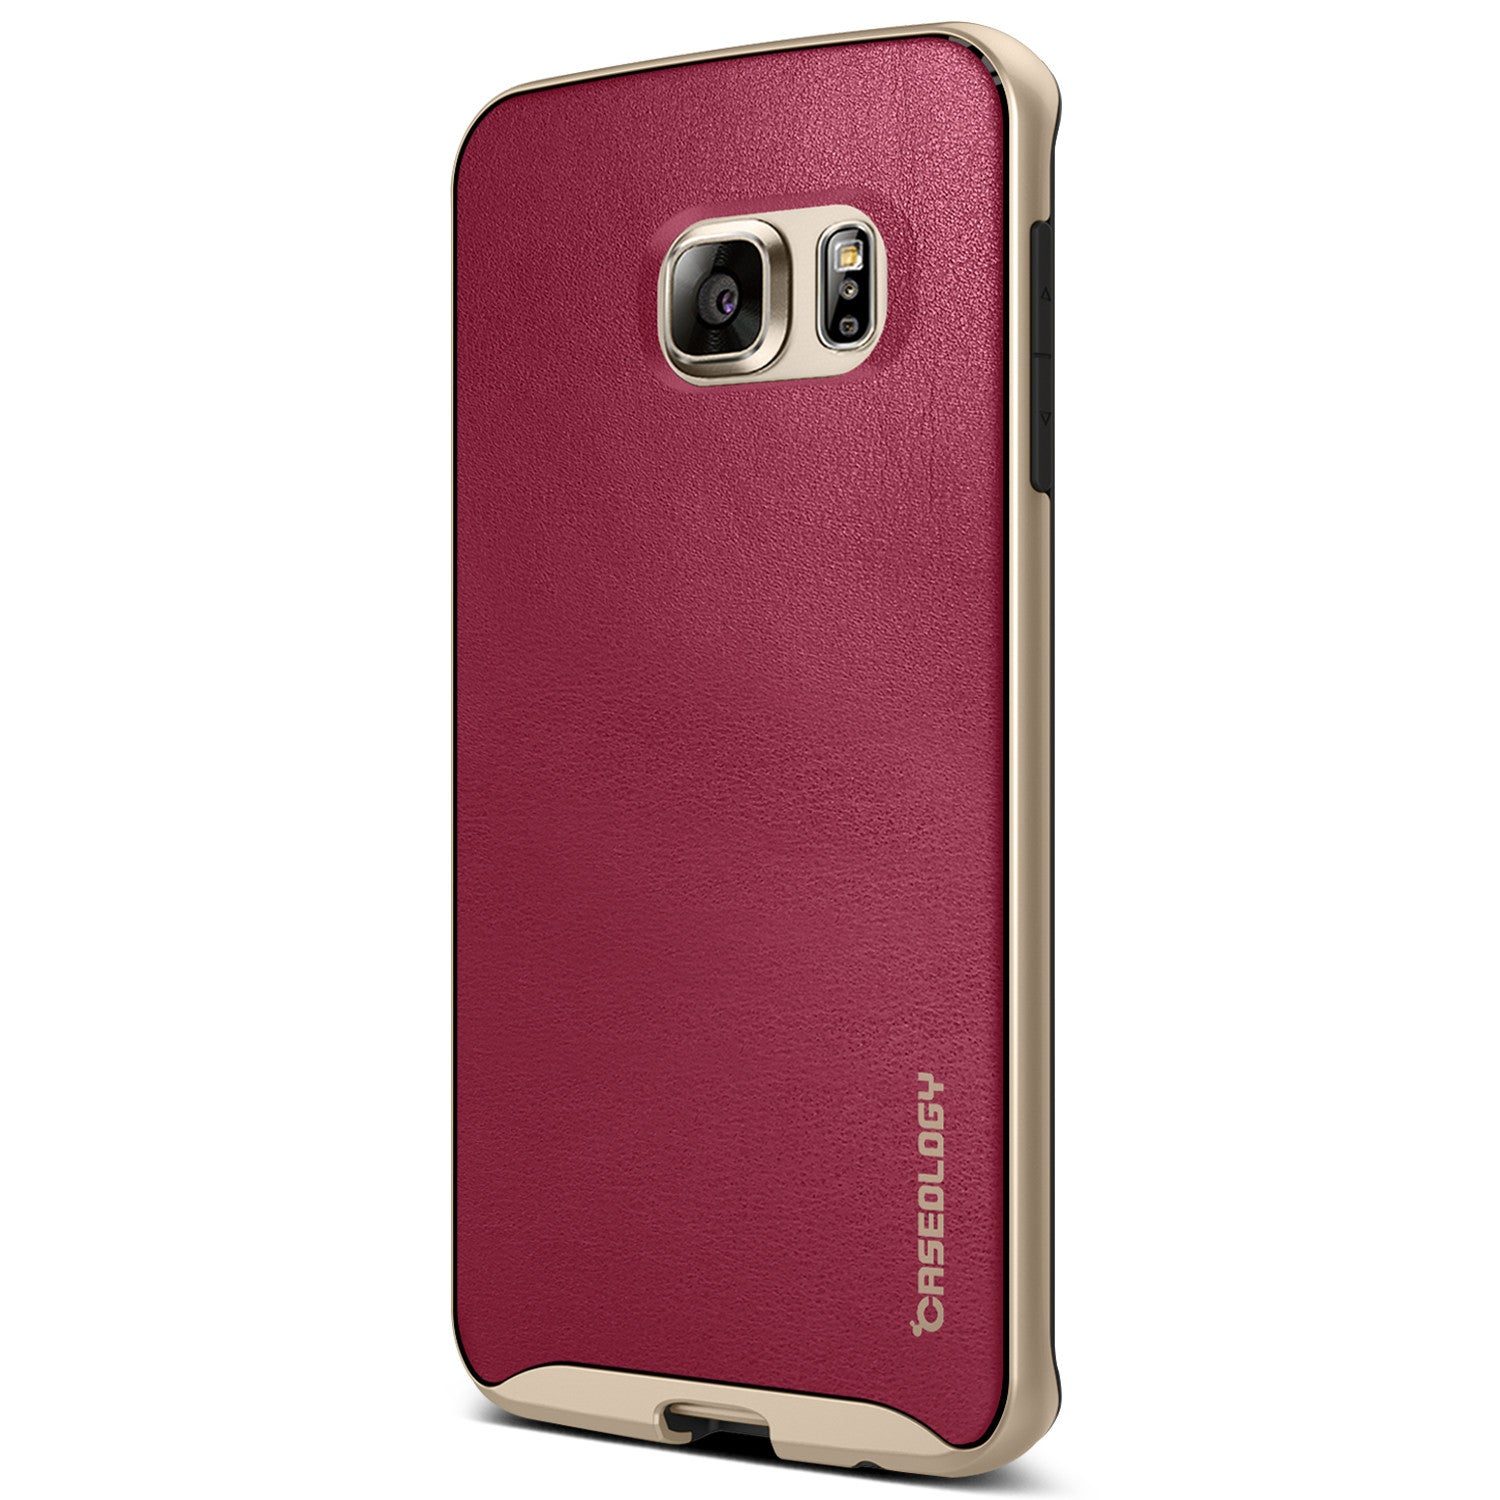 Galaxy S6 Edge Case Envoy